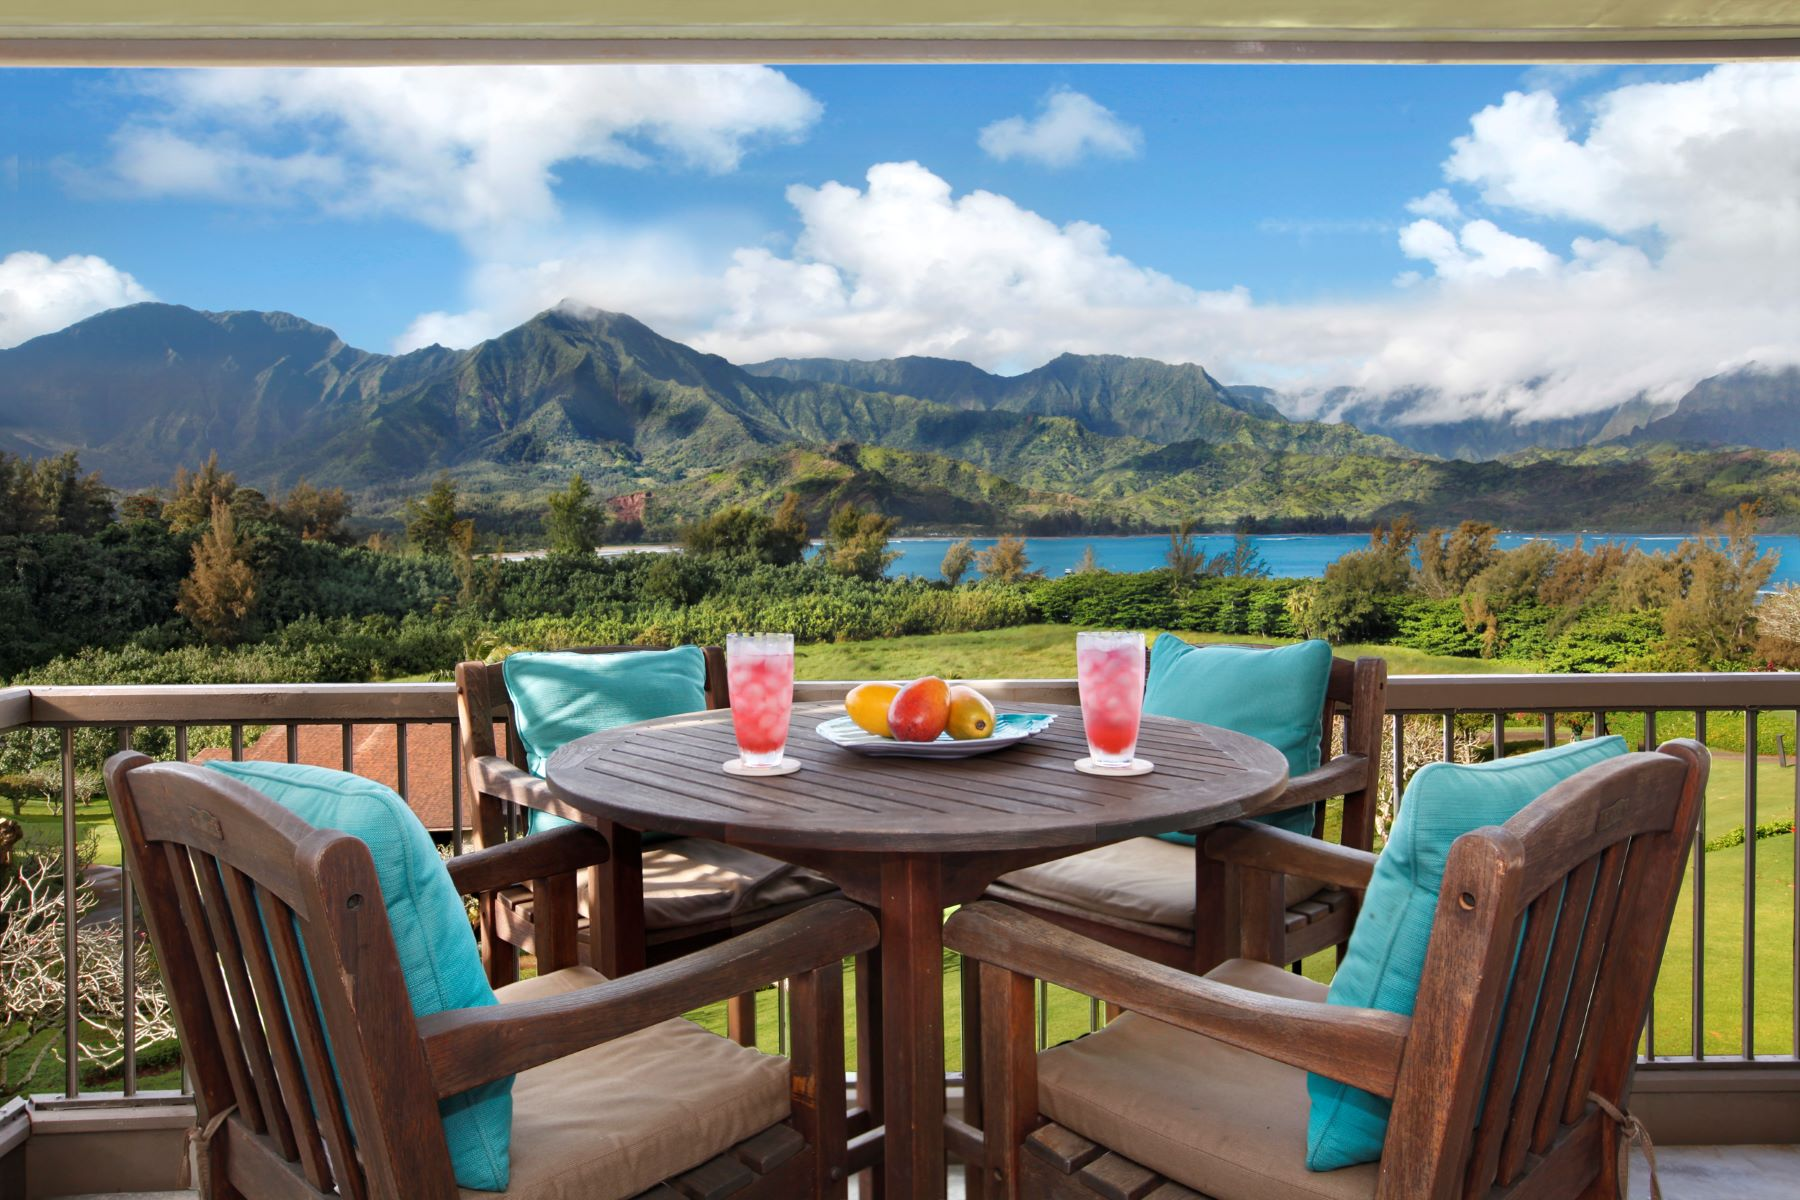 Condominiums for Sale at 5380 HONOIKI RD #C25 PRINCEVILLE, HI 96722 5380 HONOIKI RD #C25 Princeville, Hawaii 96722 United States